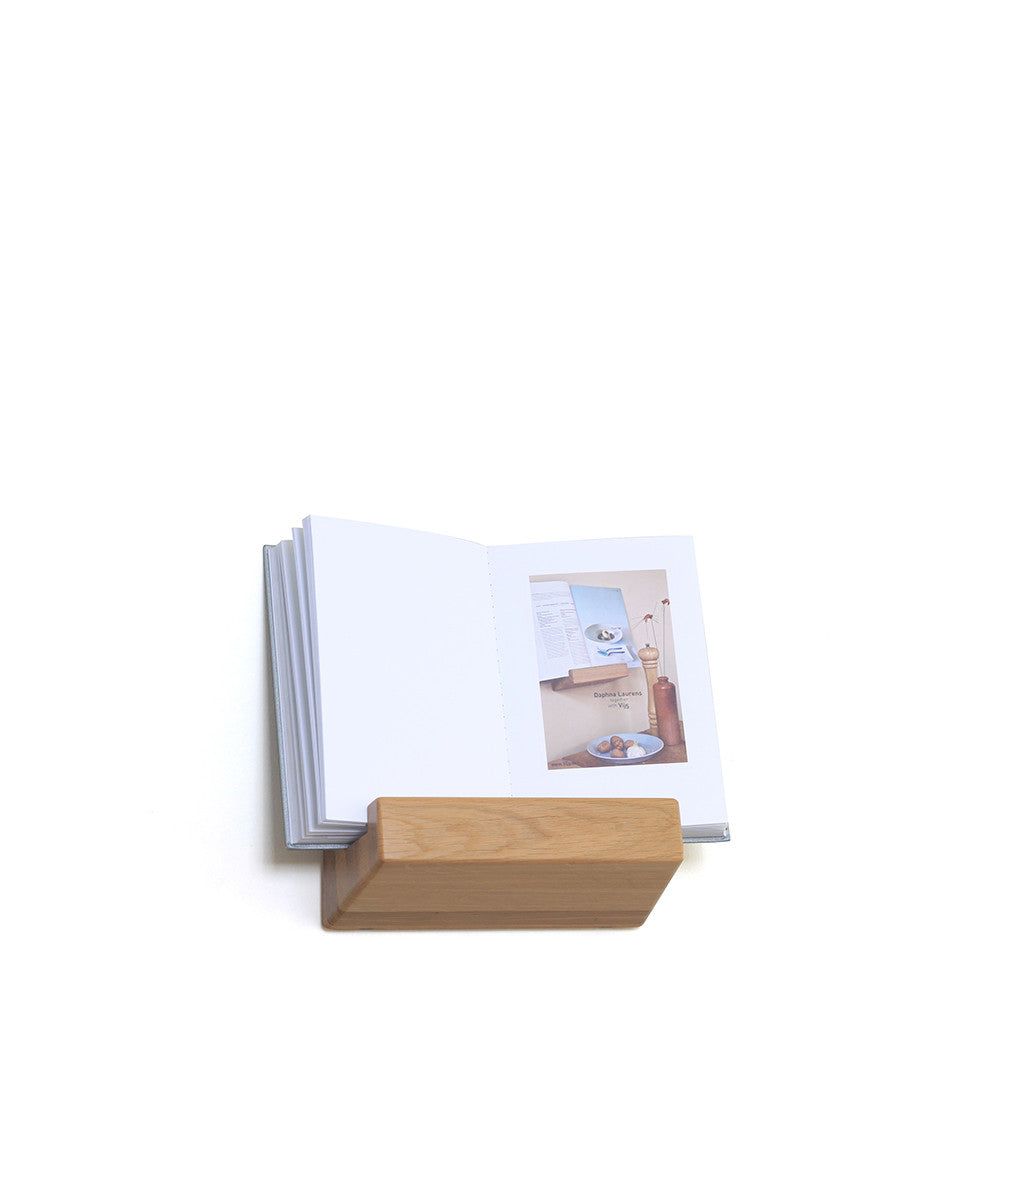 Lookshelf Small, Solid Oakwood